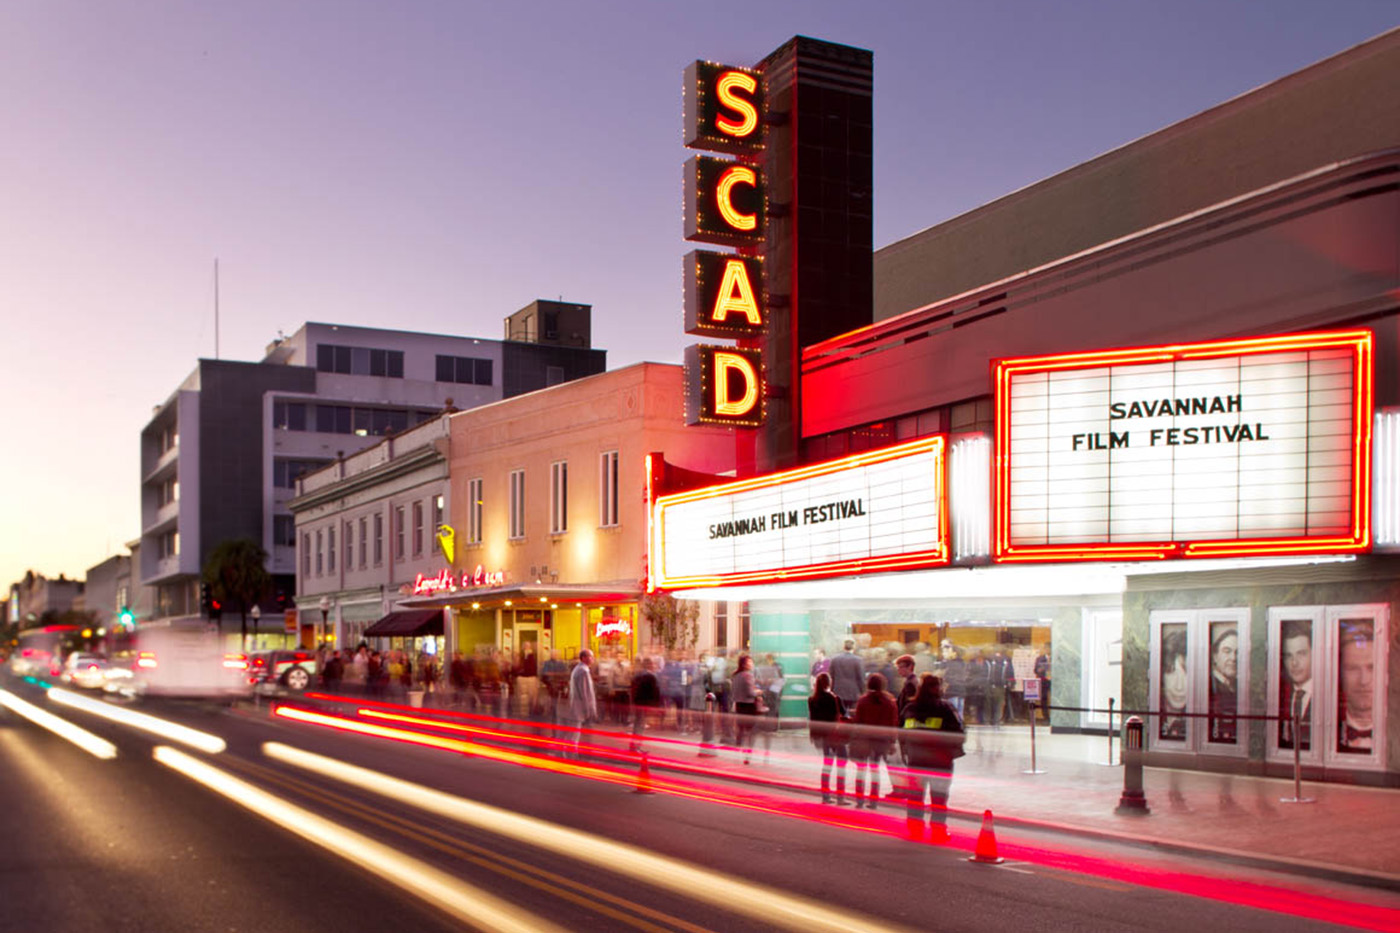 SCAD Movie Festival at Trustee Theater